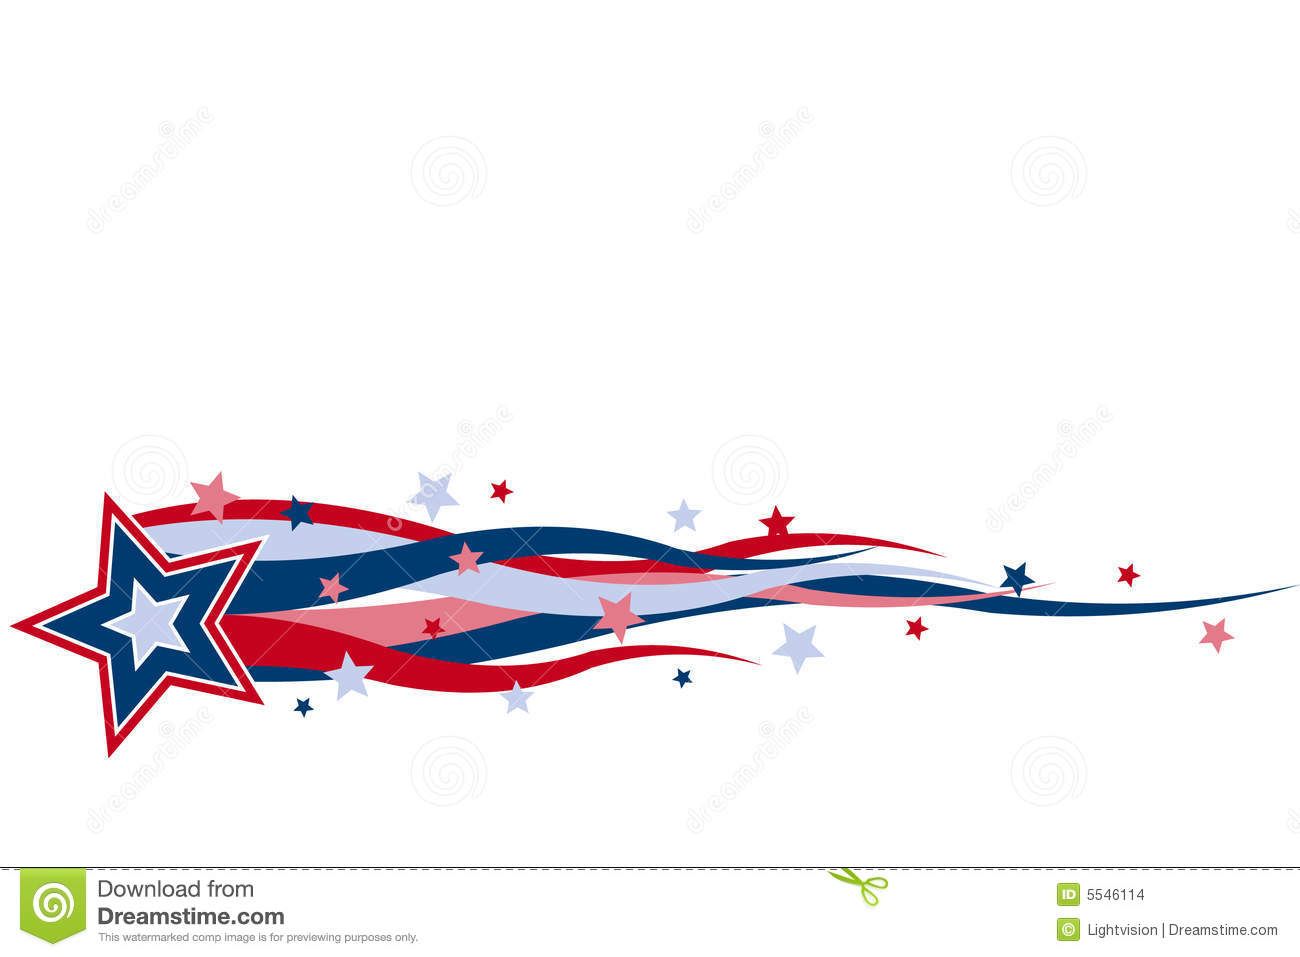 Red white blue banner clipart 2 » Clipart Station.